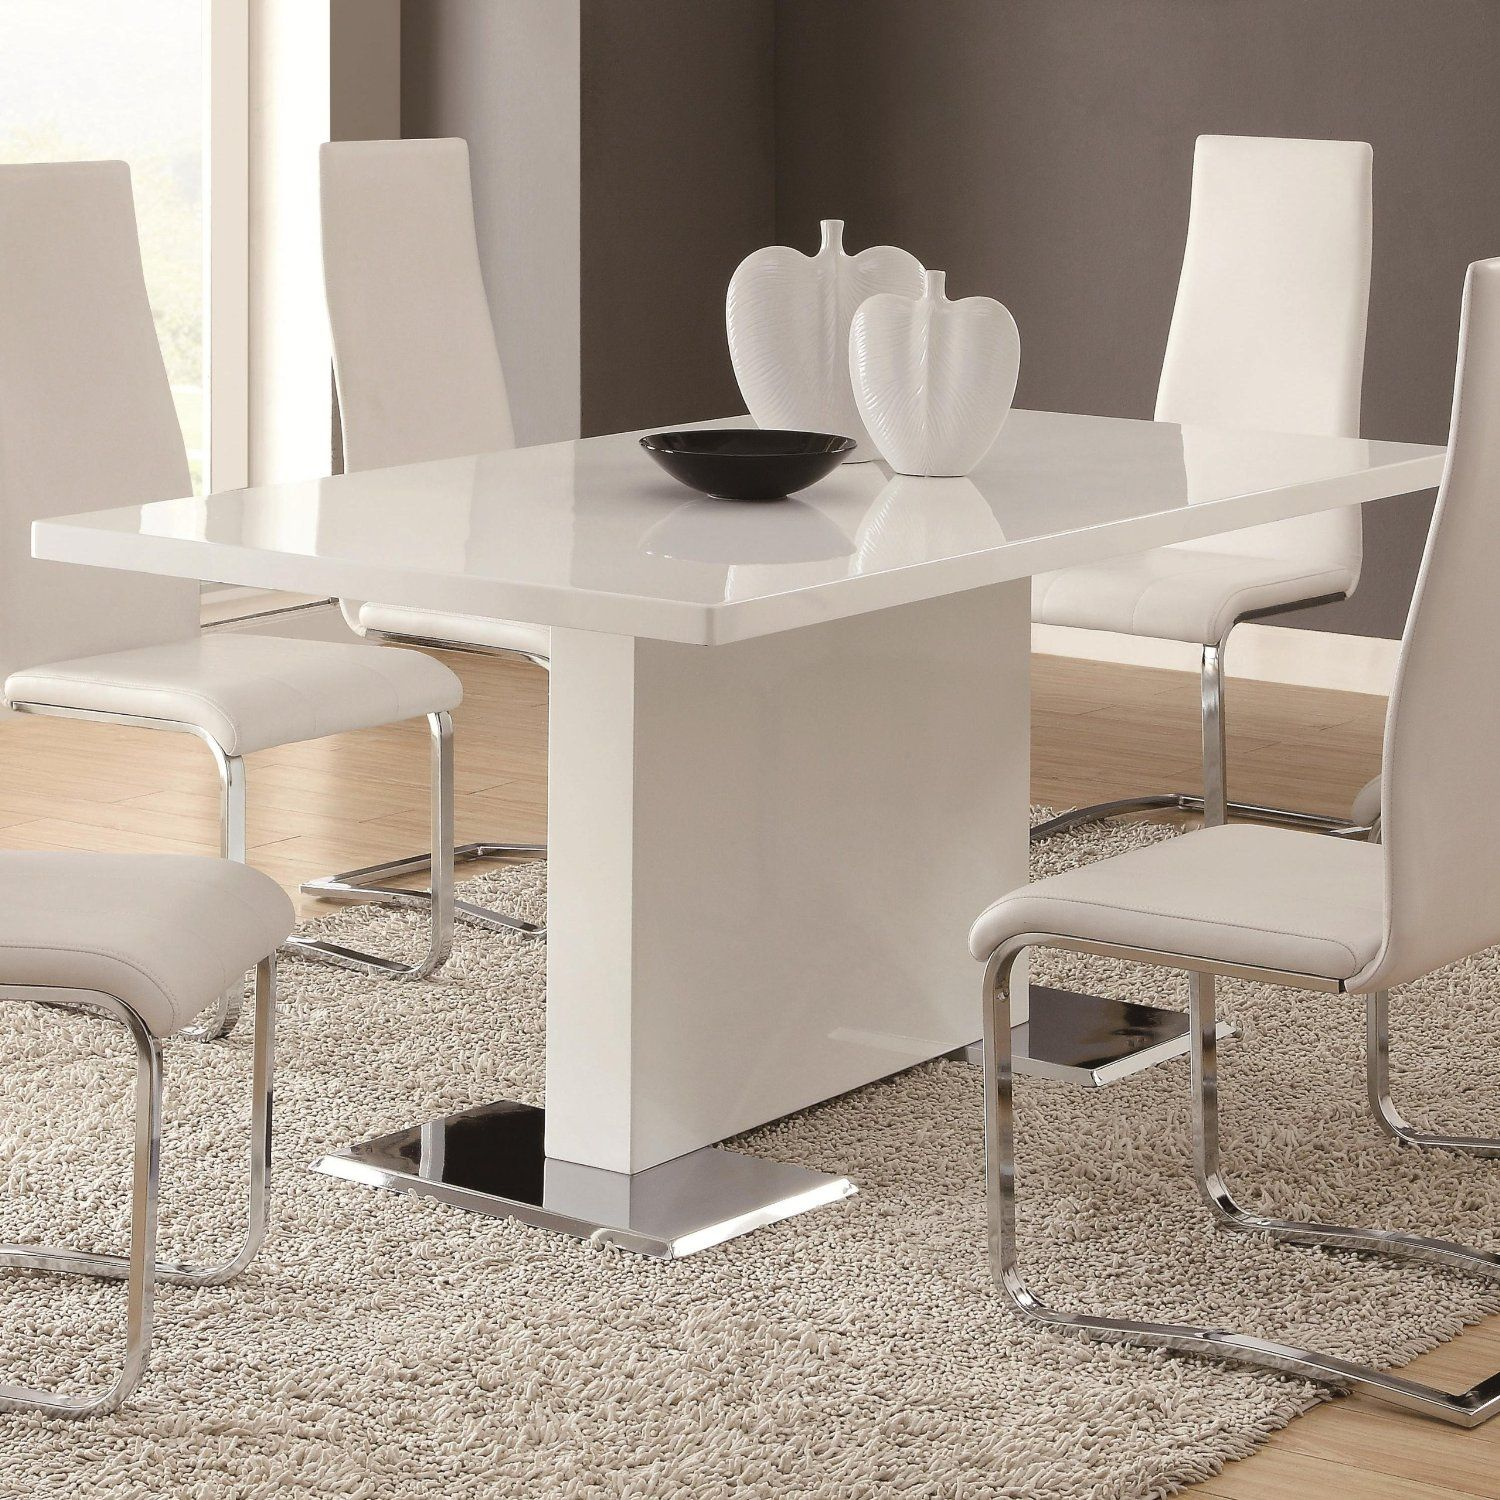 Kitchen Table And Chairs Amazon: Glossy White Contemporary Dining Table